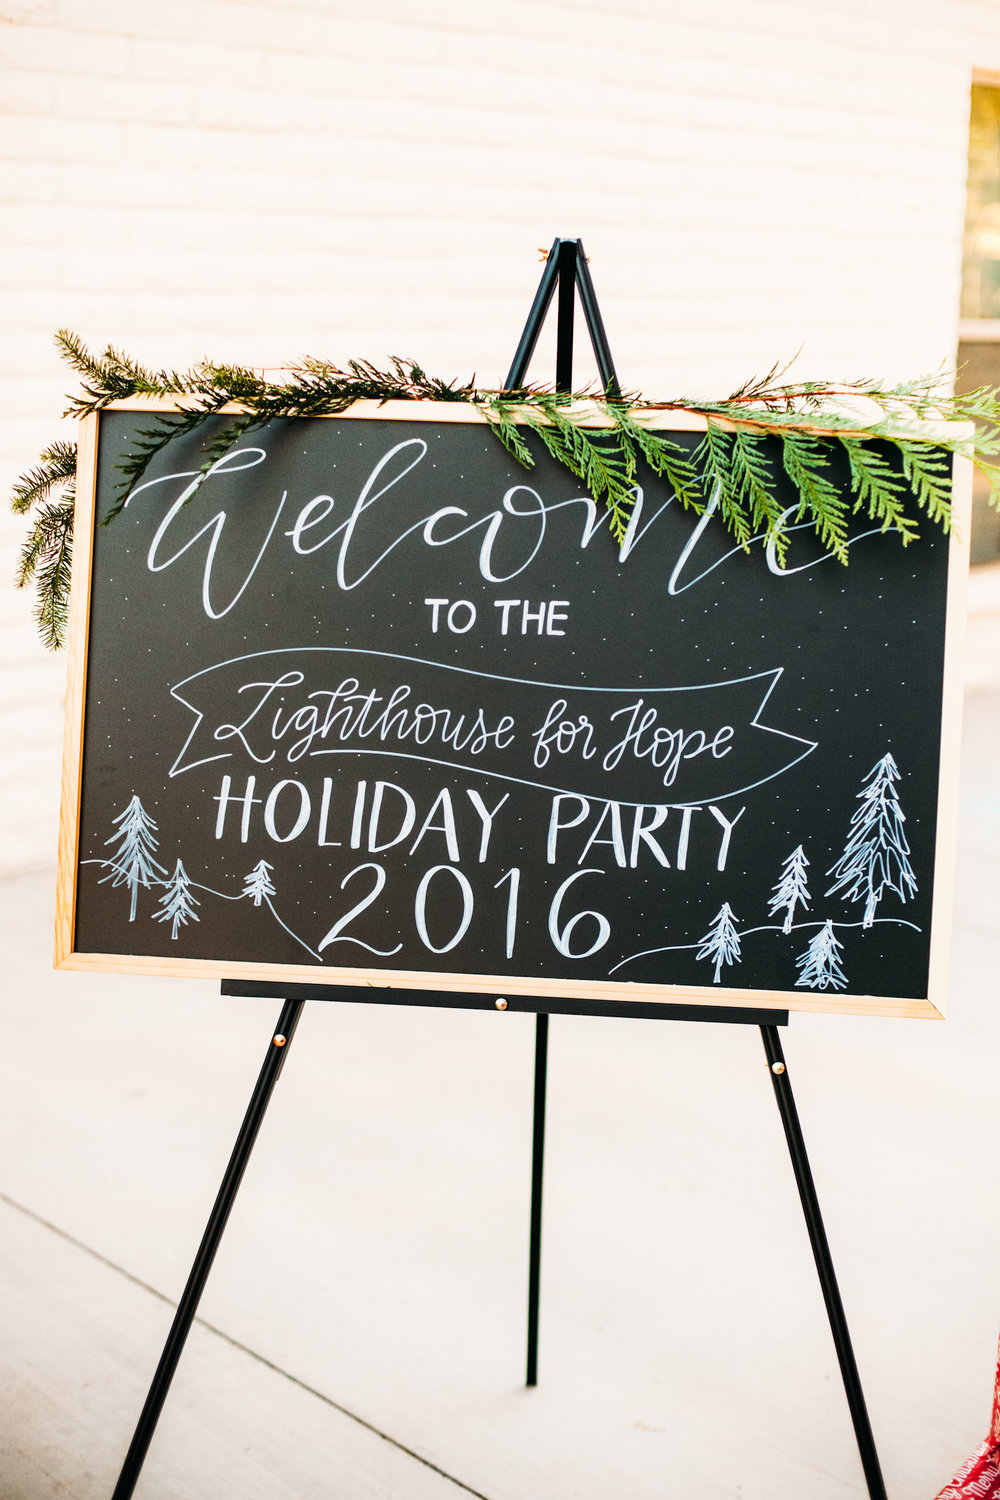 LighthouseForHope-HolidayParty-3.jpg